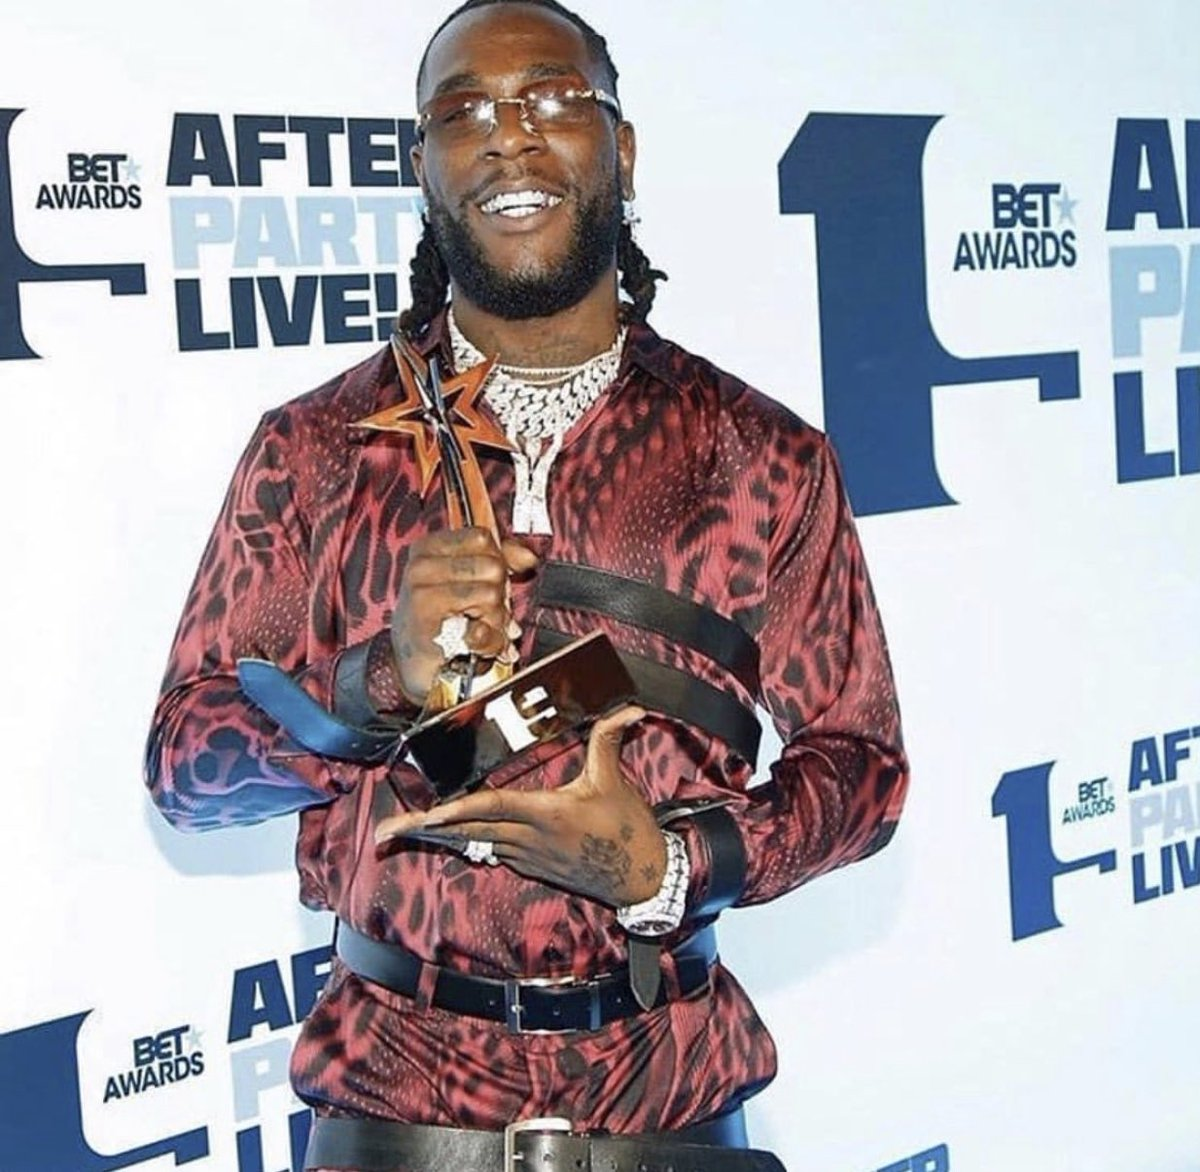 Congrats Mi lo lo !!! U over deserve this my brother !! More to come @burnaboy 🖤